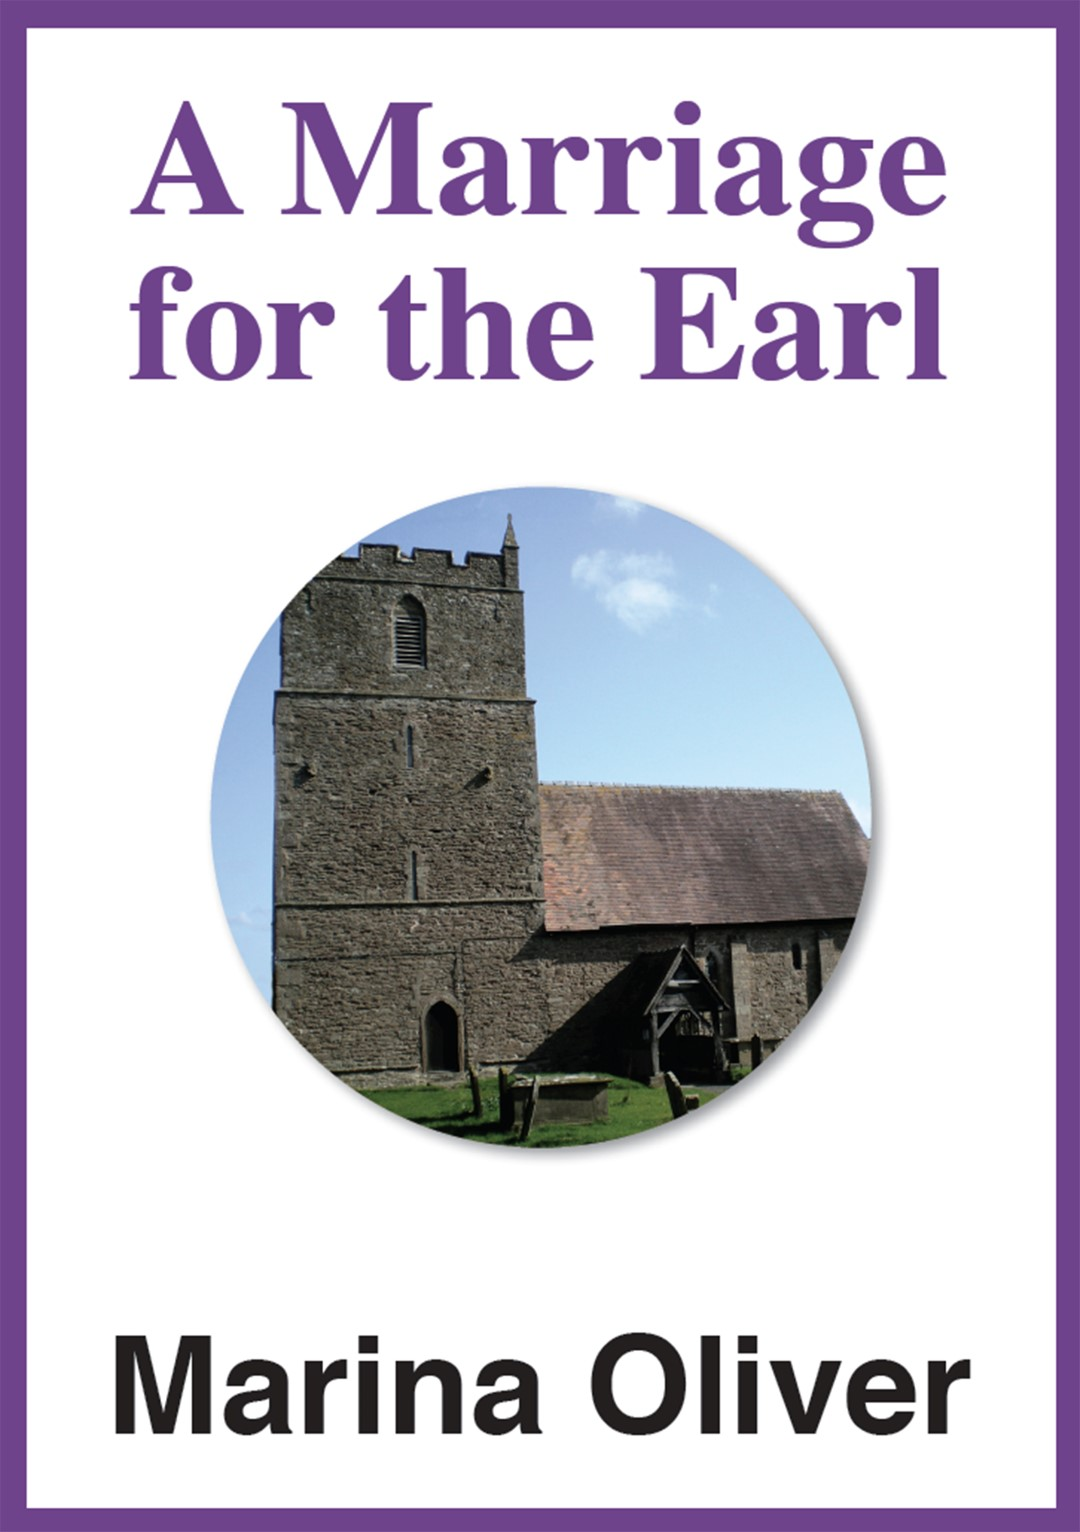 Amarriage for the Earl Ebook